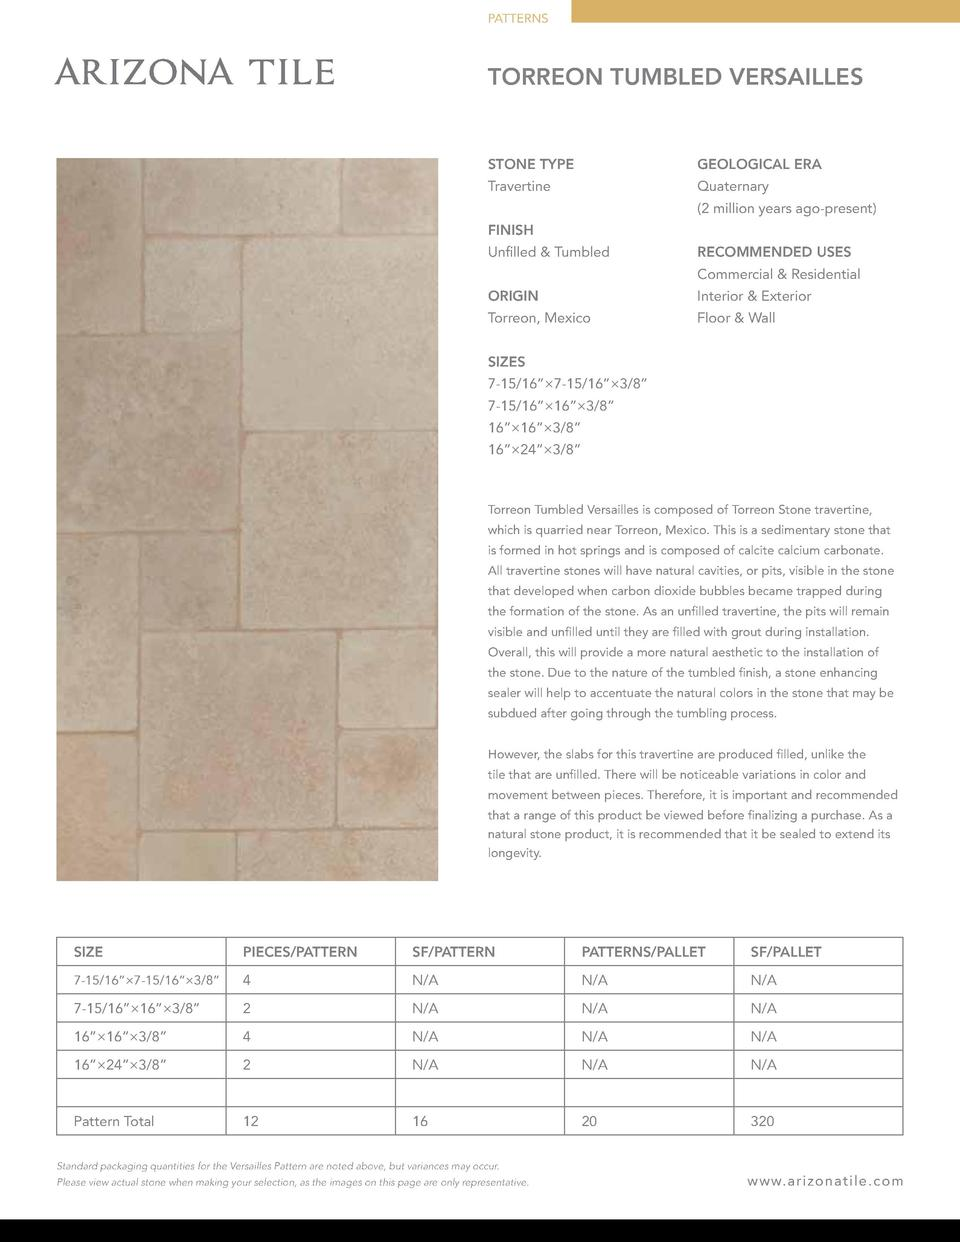 PATTERNS  TORREON TUMBLED VERSAILLES  STONE TYPE  GEOLOGICAL ERA  Travertine  Quaternary  2 million years ago-present   FI...